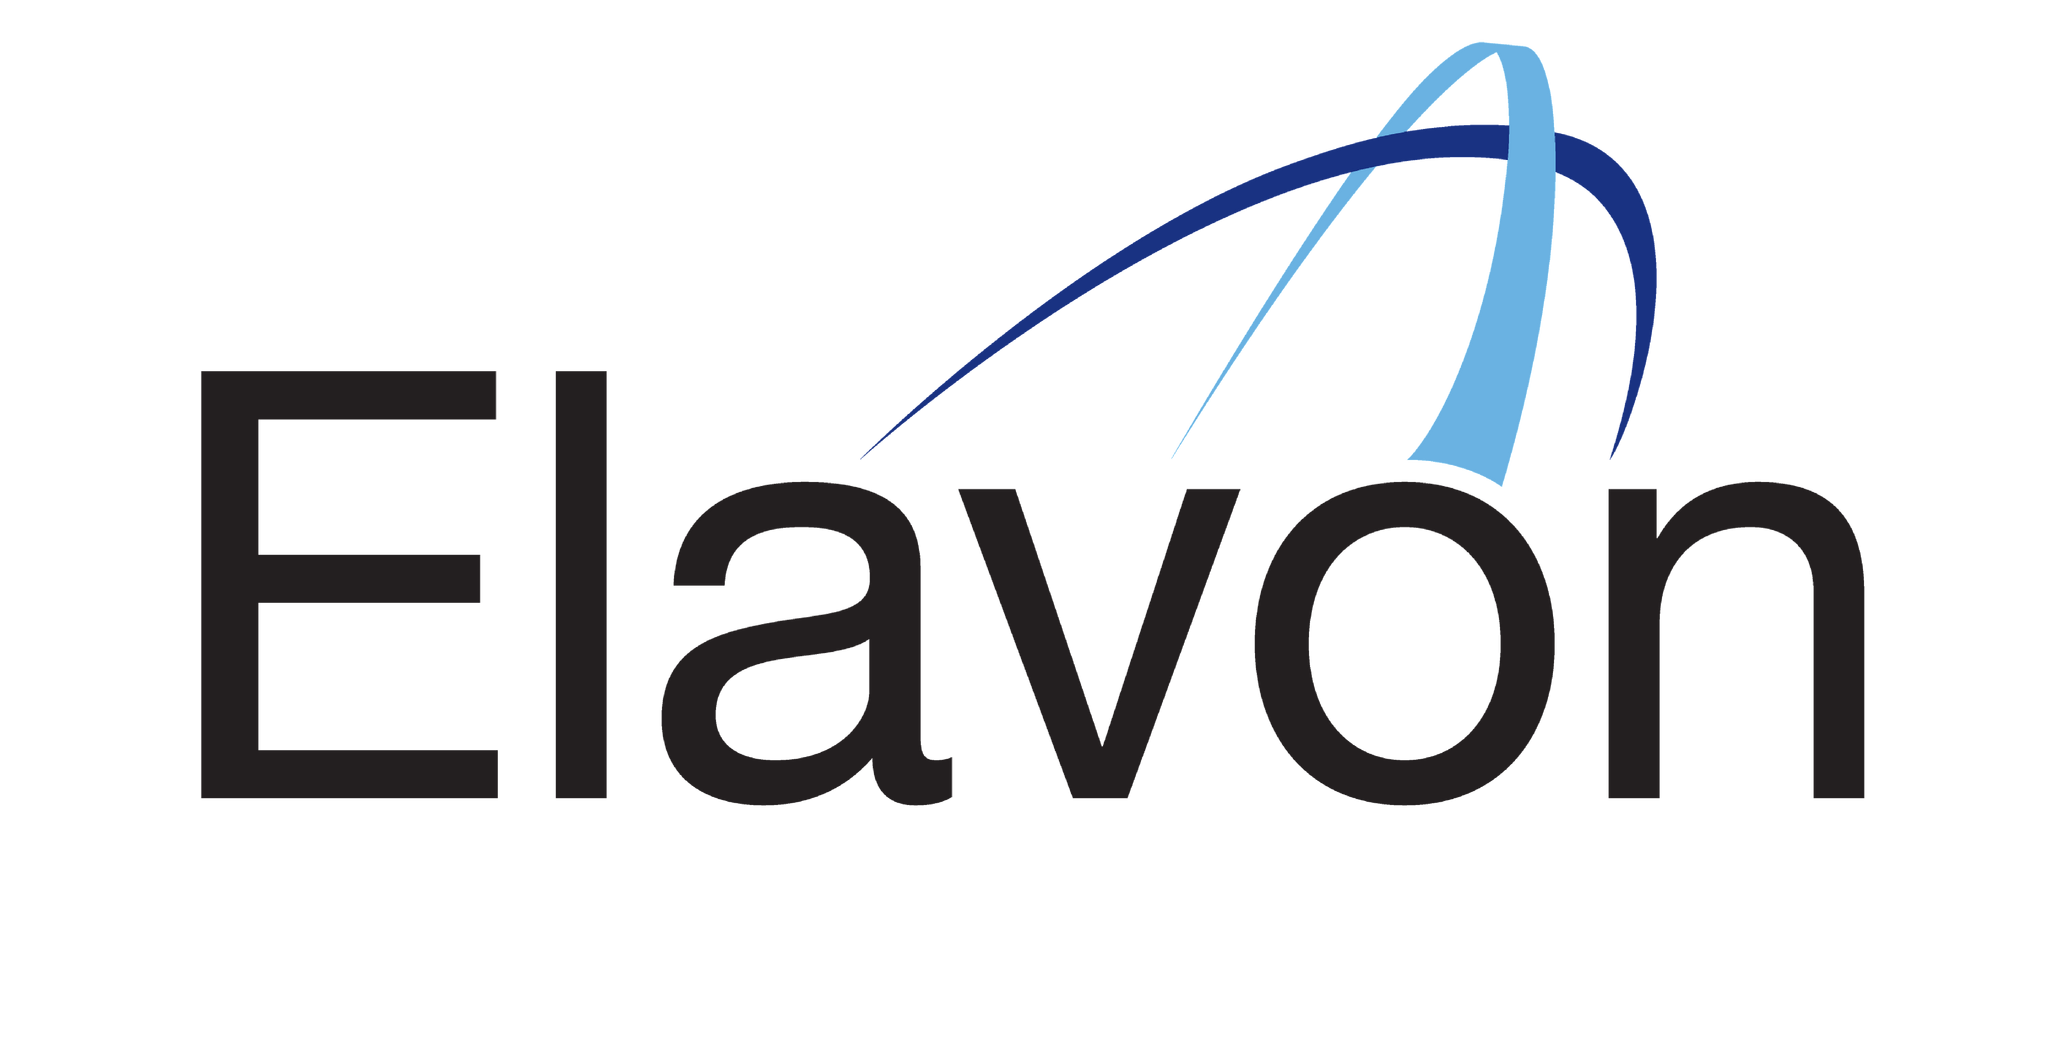 Elavon Financial Services Limited